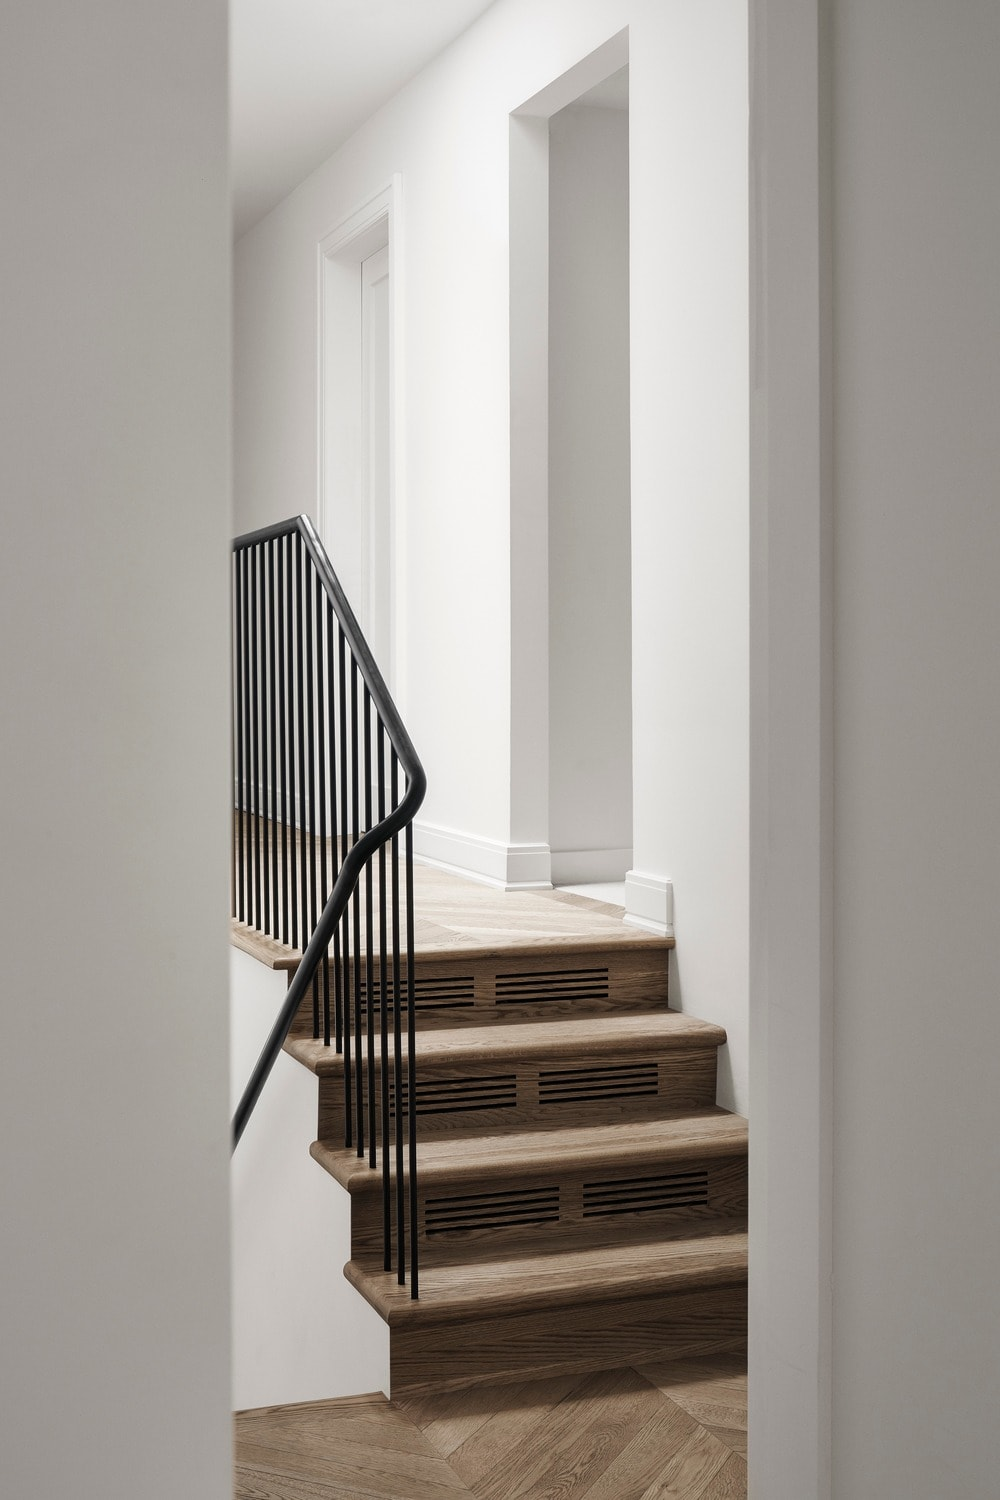 The staircase has black wrought iron railings that stand out against the white walls.